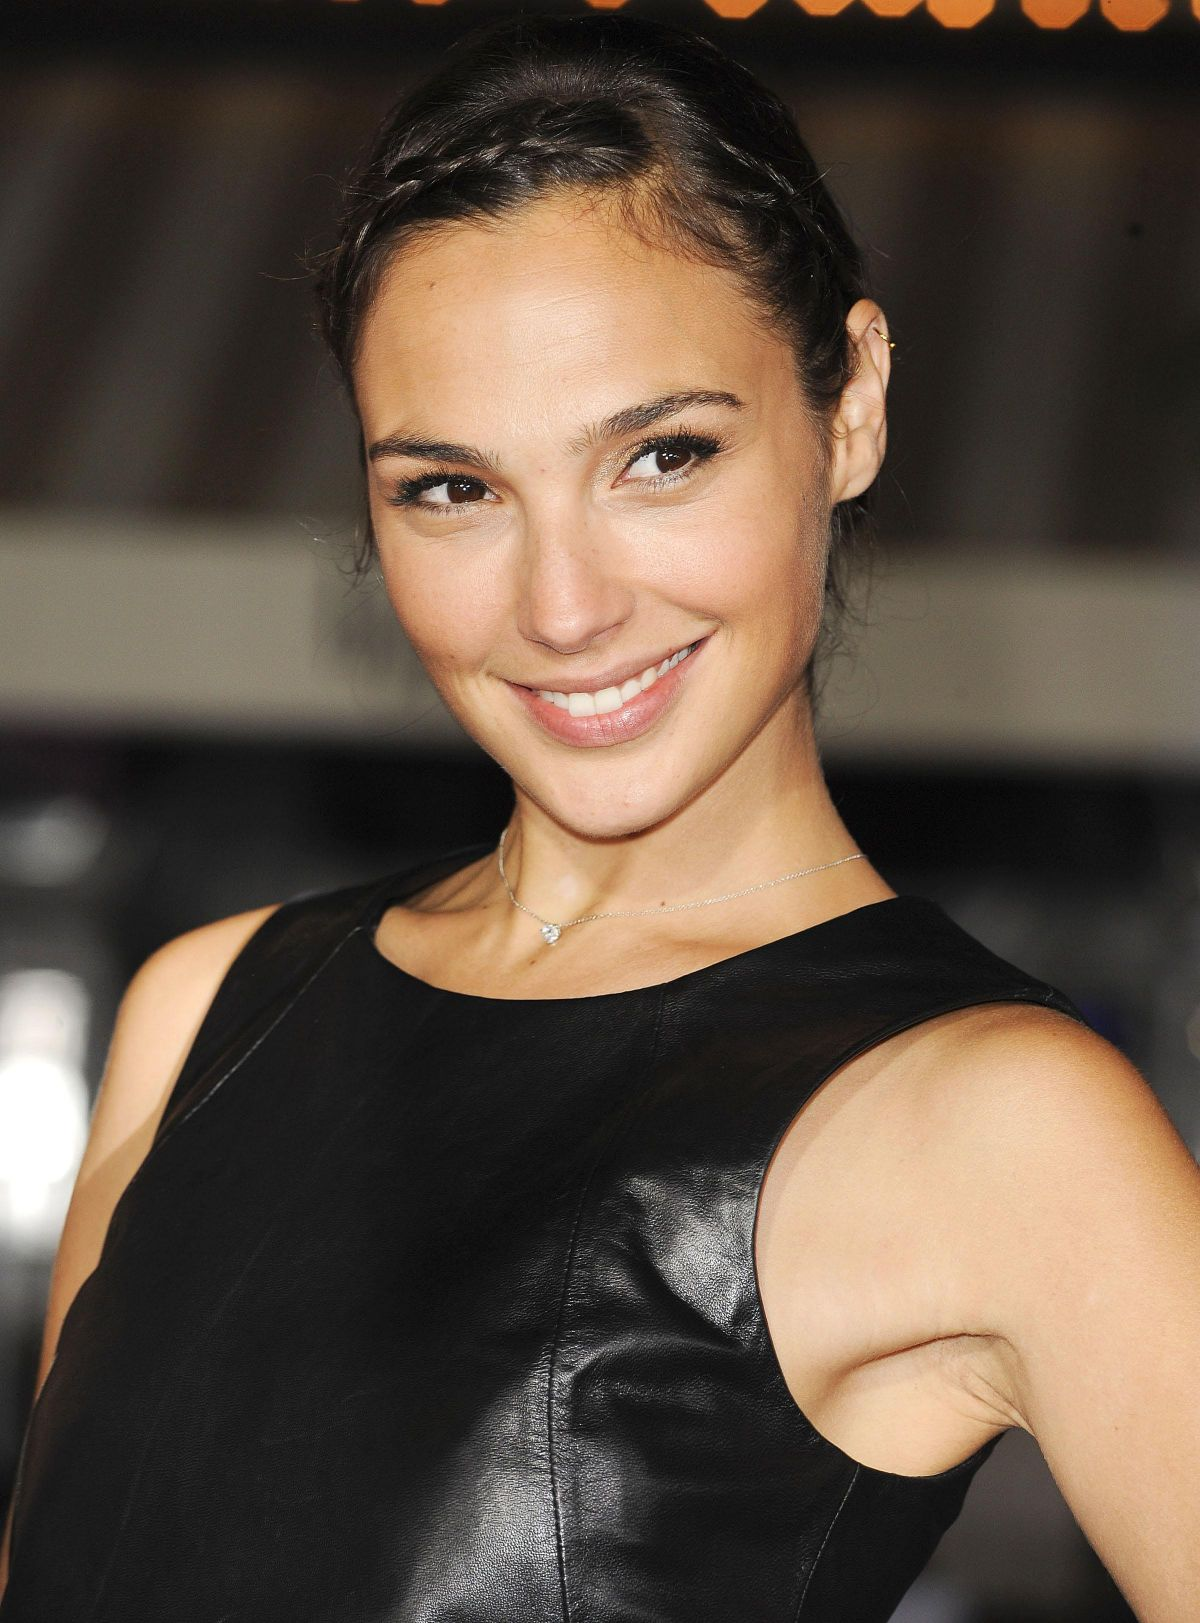 Gal Gadot The Fast And The Furious Wiki Fandom Powered By Wikia